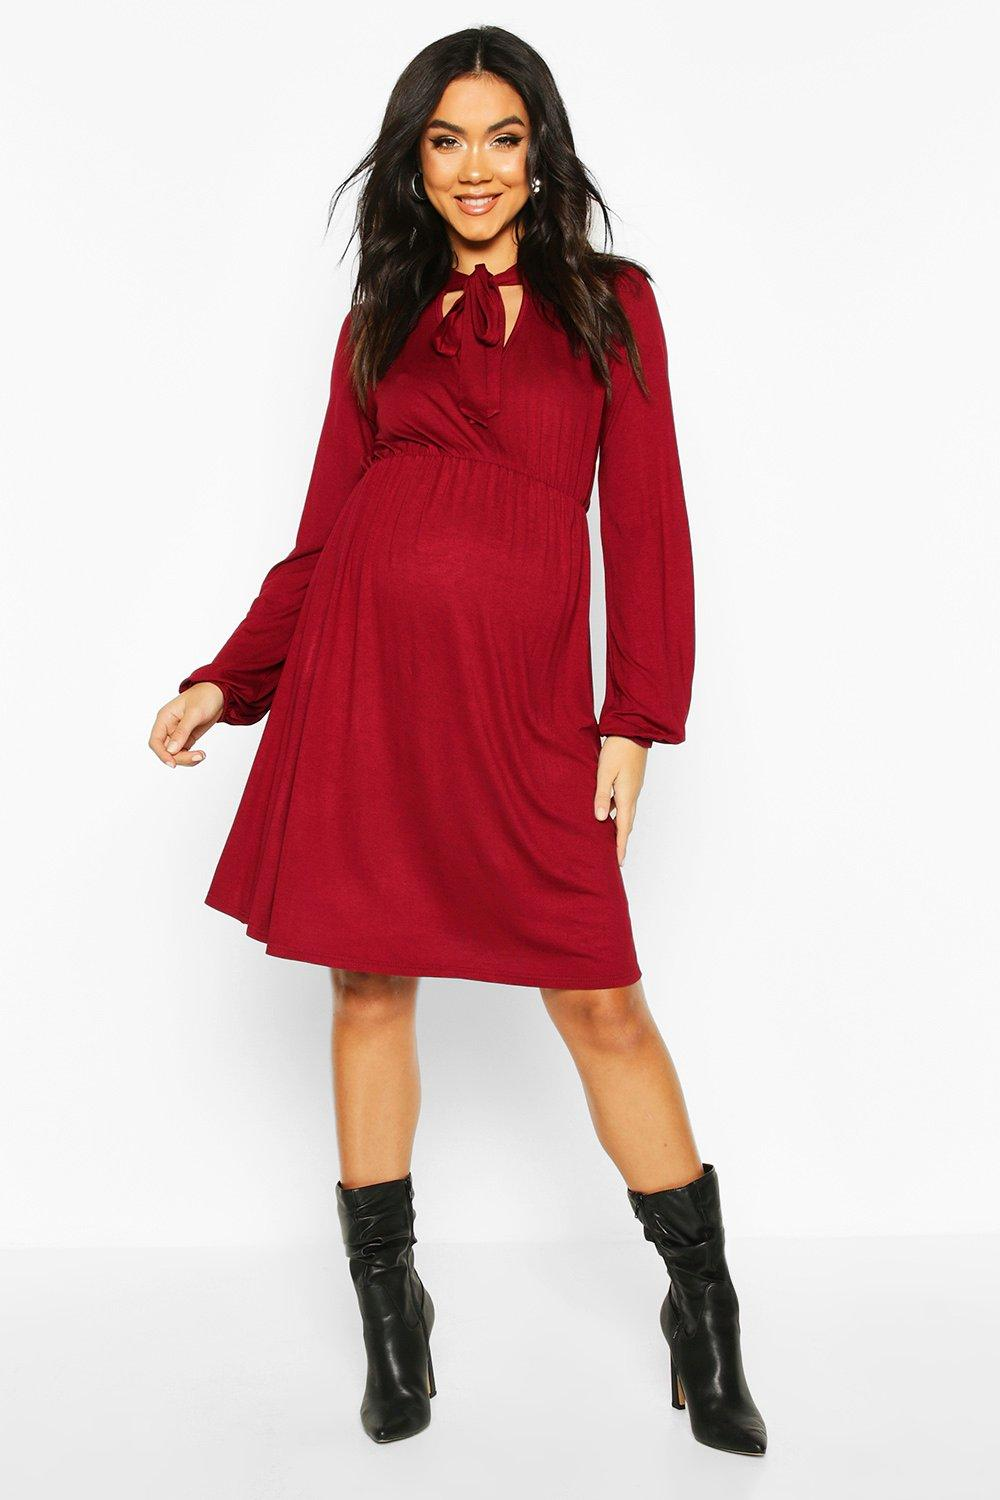 Vintage Style Maternity Clothes Womens Maternity Tie Neck Smock Dress - red - 12 $37.00 AT vintagedancer.com